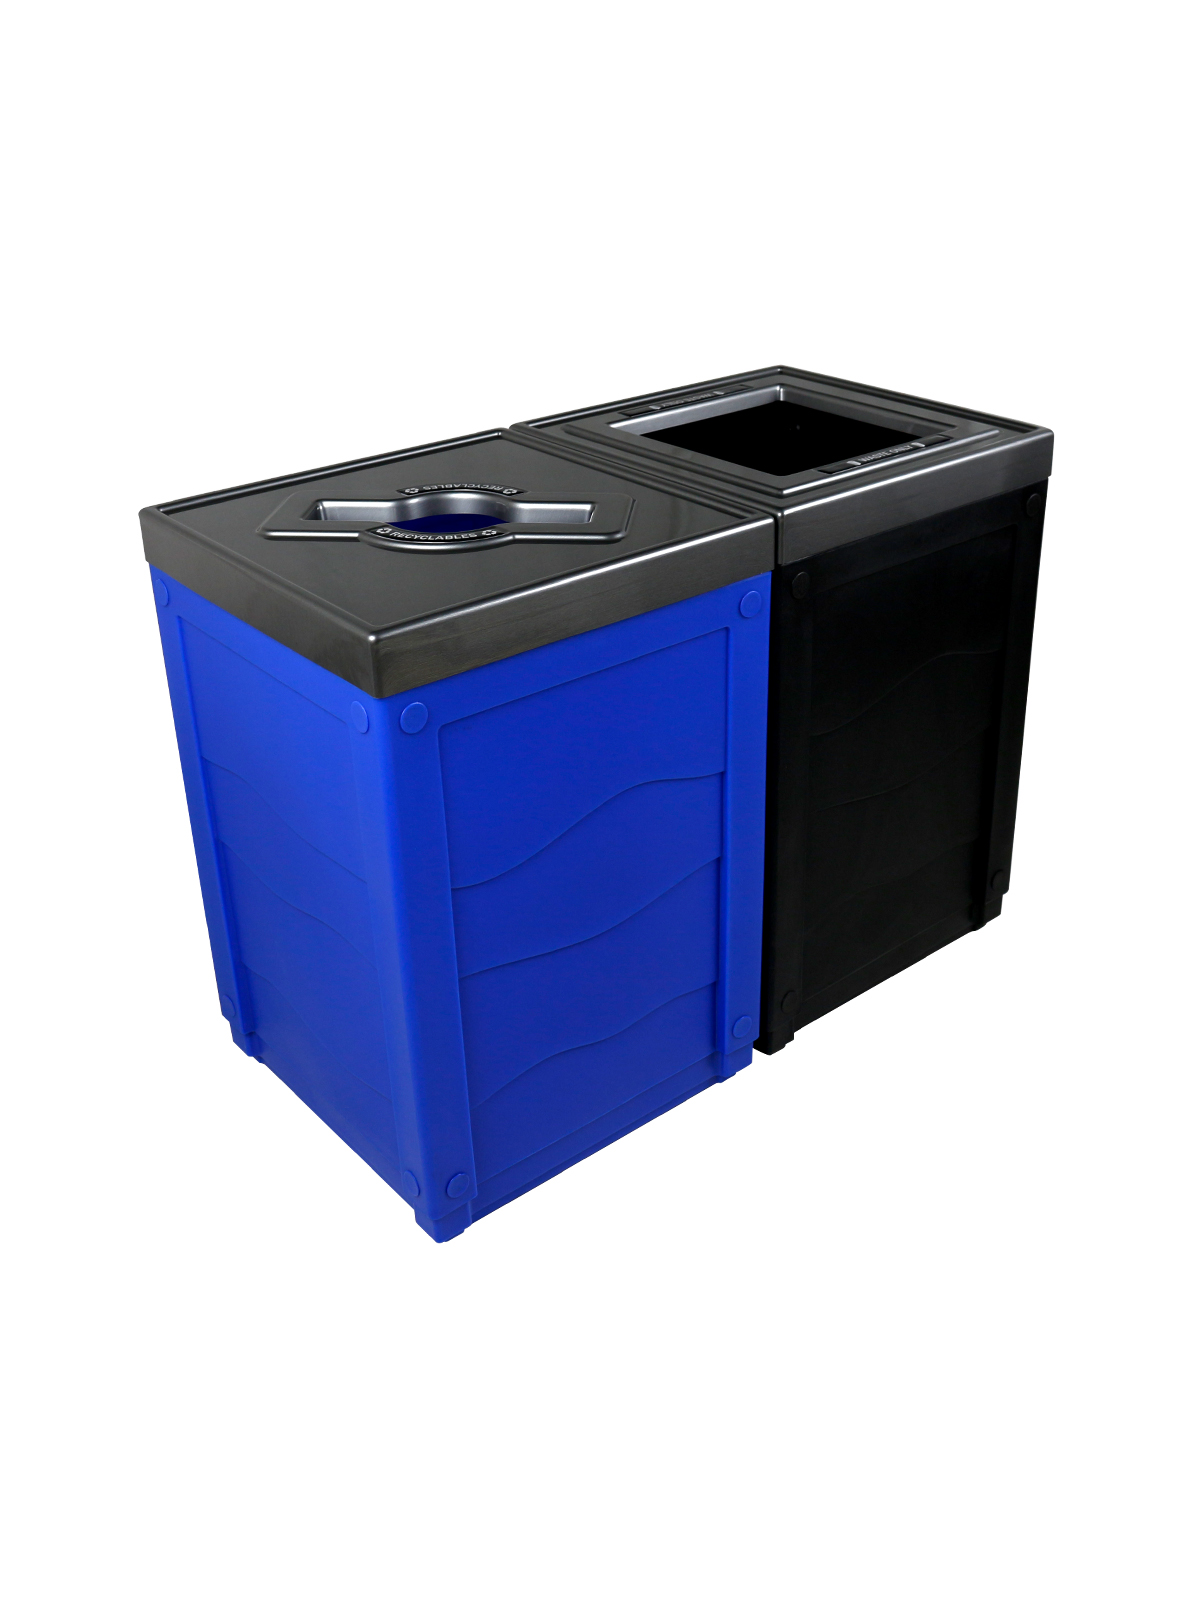 EVOLVE - Double - Recyclables-Waste - Mixed-Full - Blue-Black